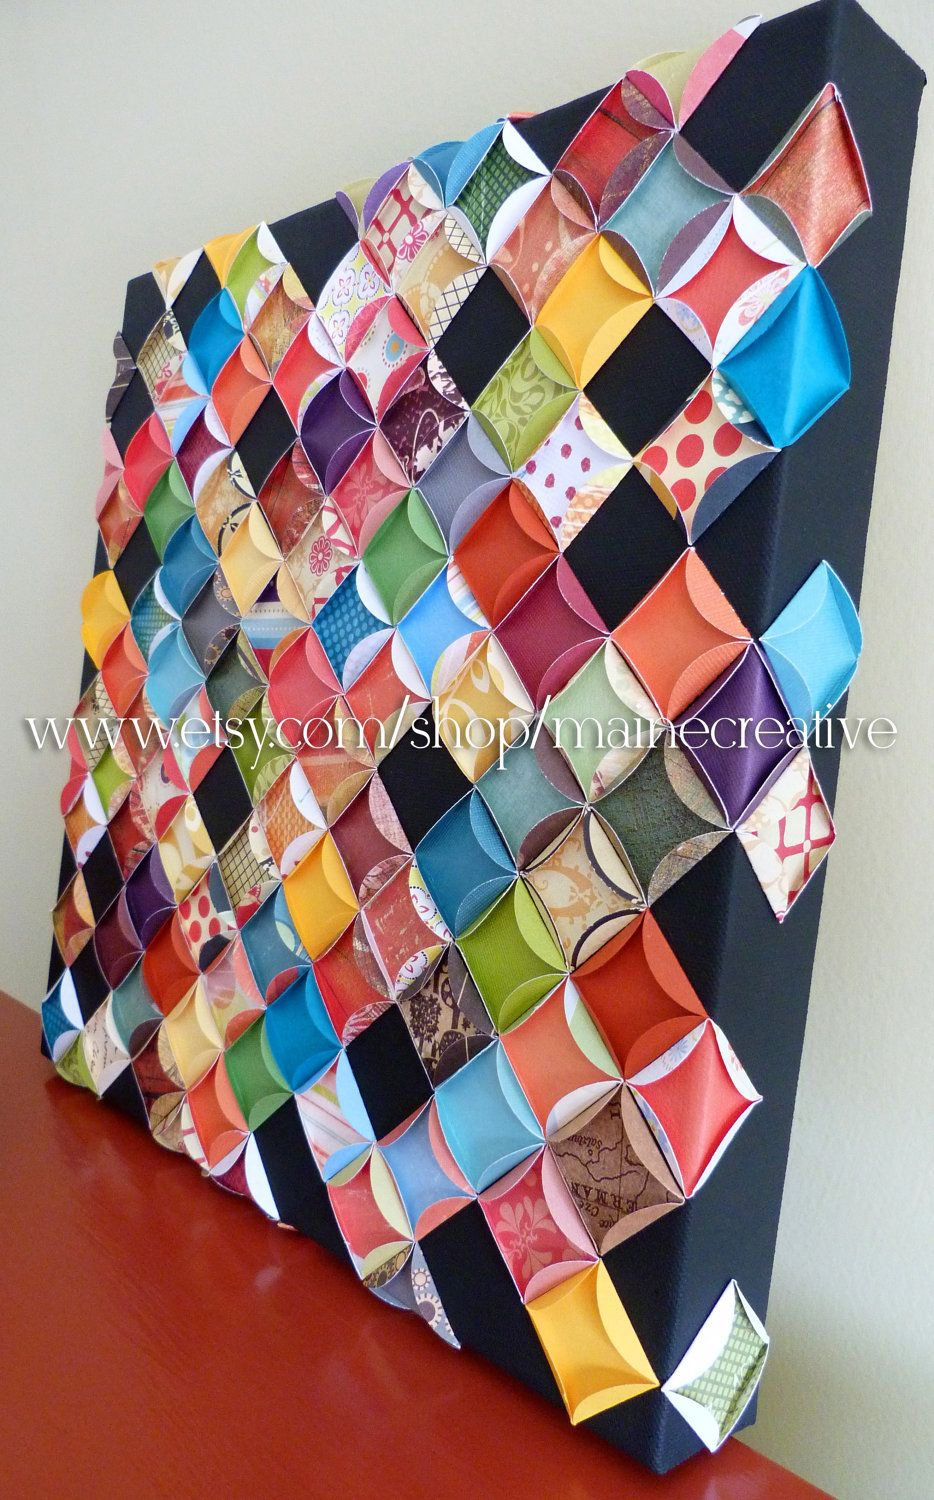 Scrapbook paper wall art - Paper Patchwork On Painted Canvas 3 Dimensional Bright To Match Fiesta I Could Do